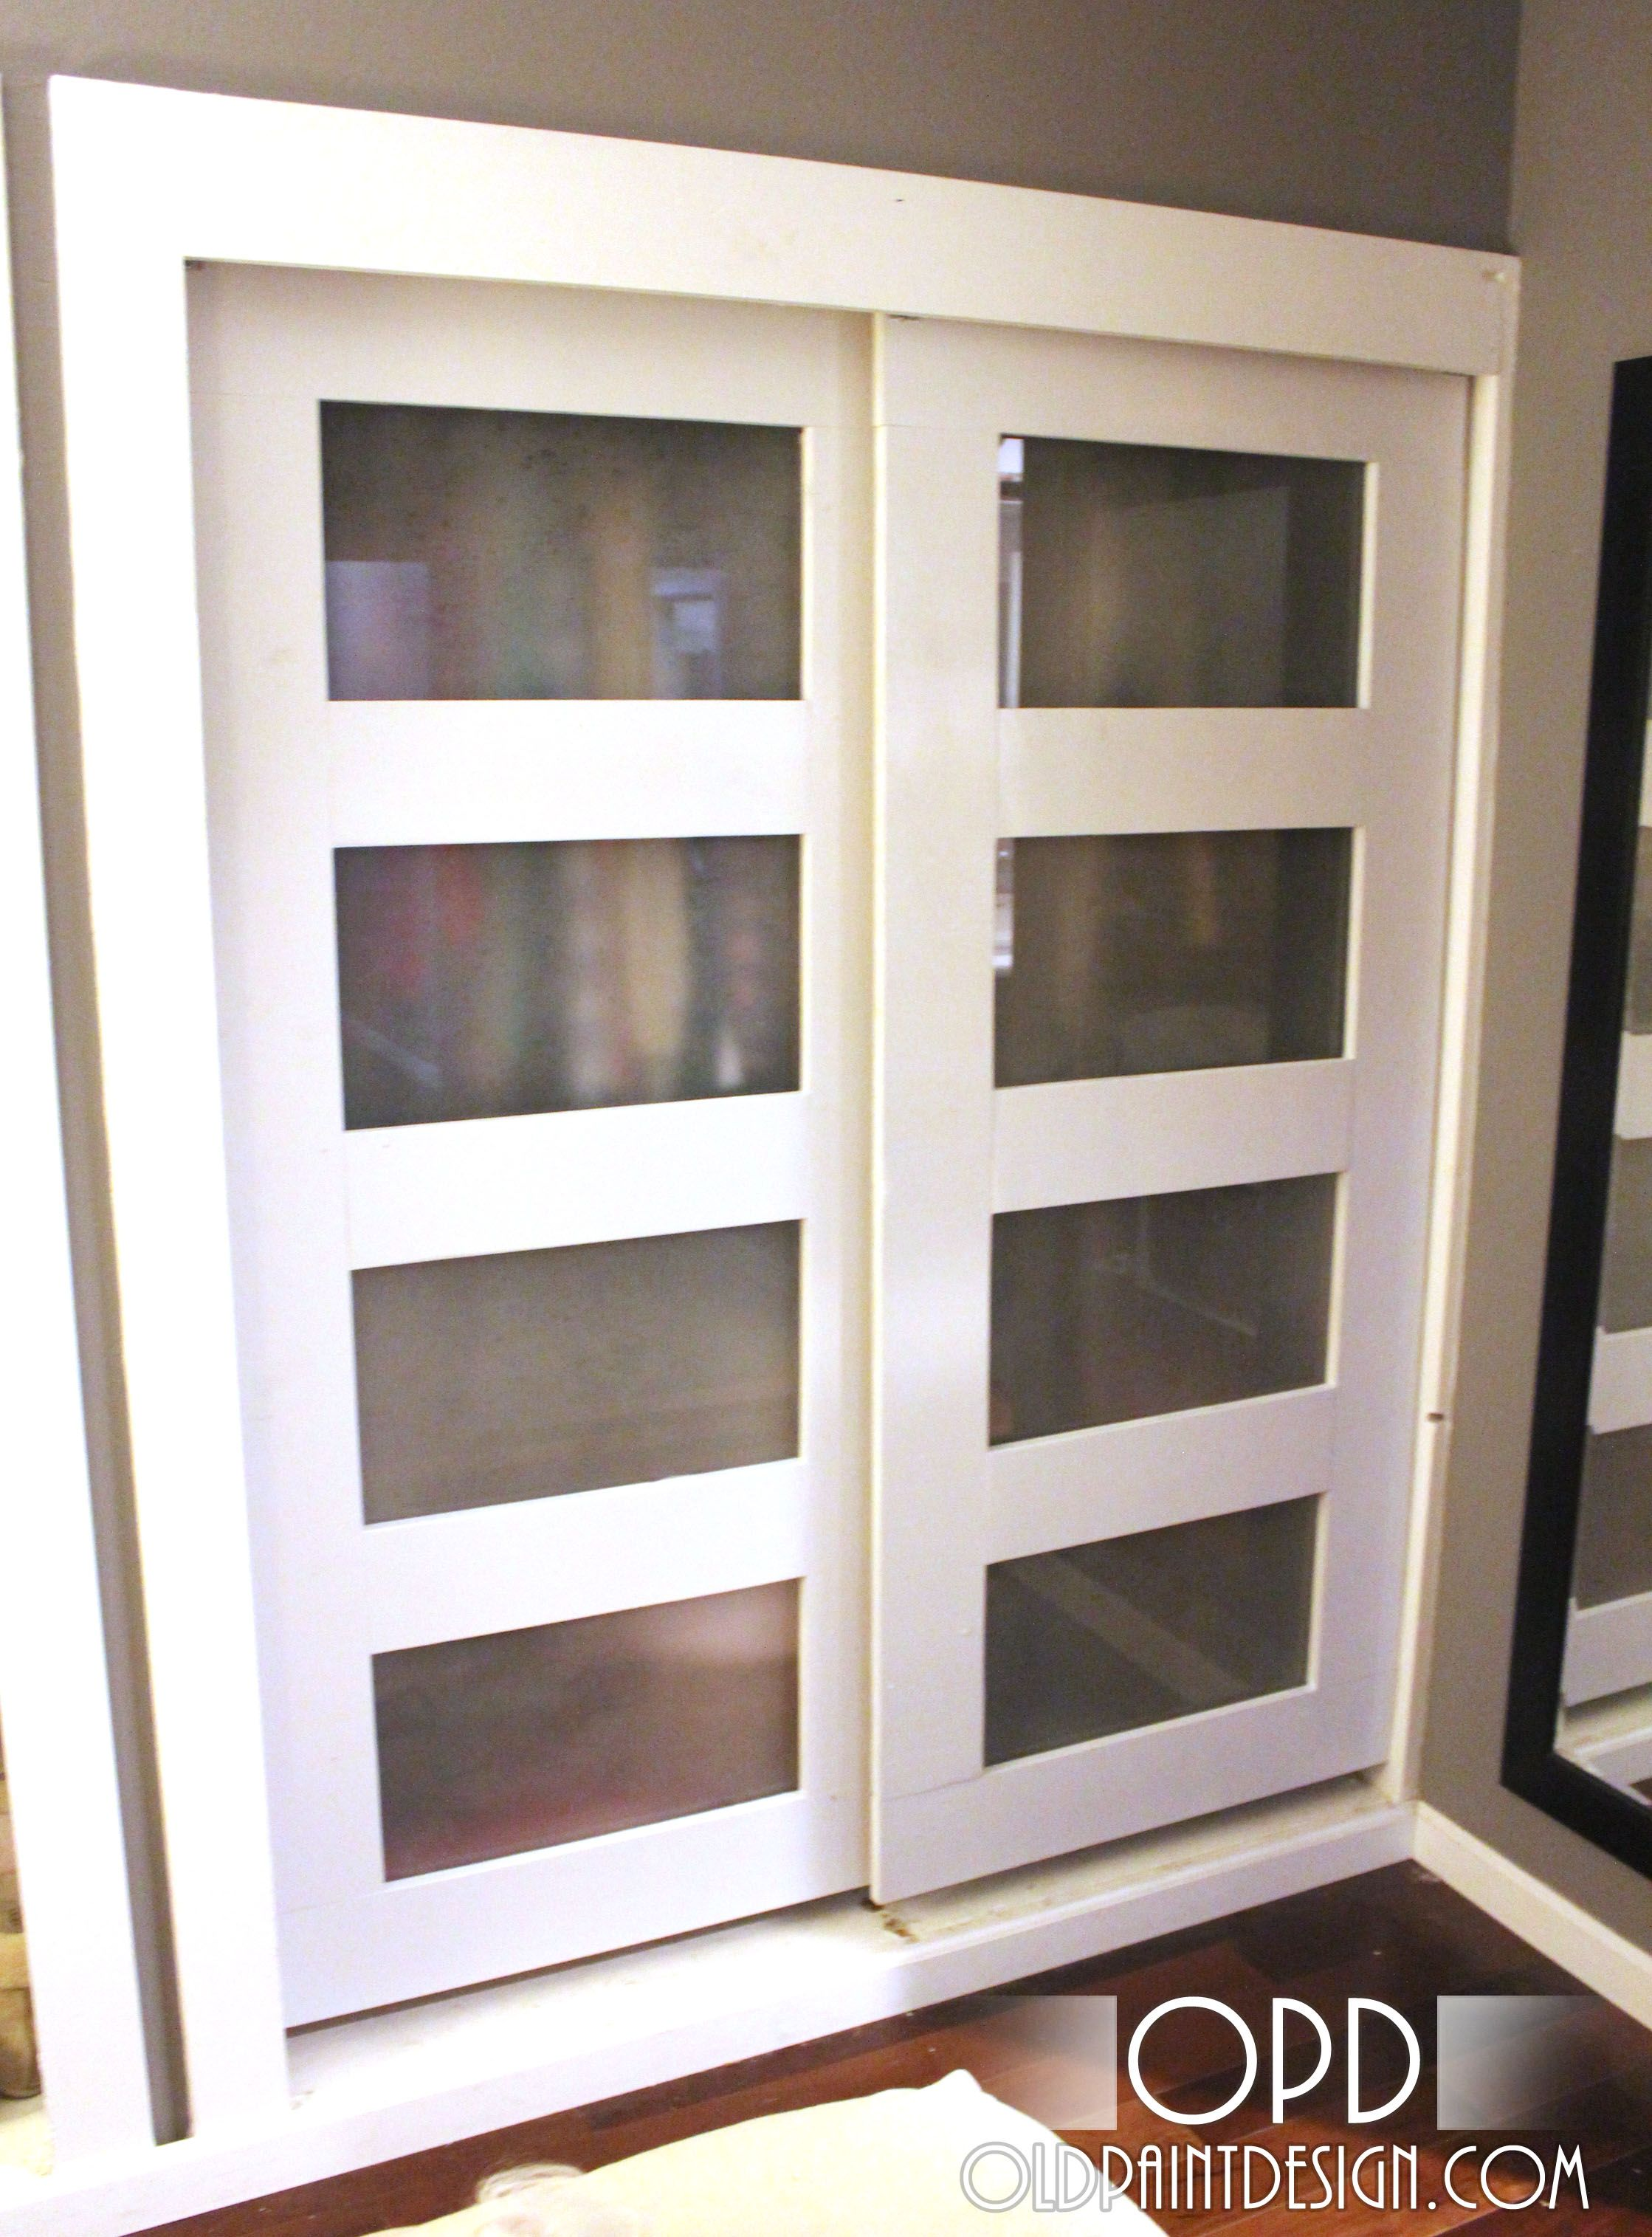 DIY Sliding Closet Doors Stained Glass Panels Rather Than Frosted Glass?